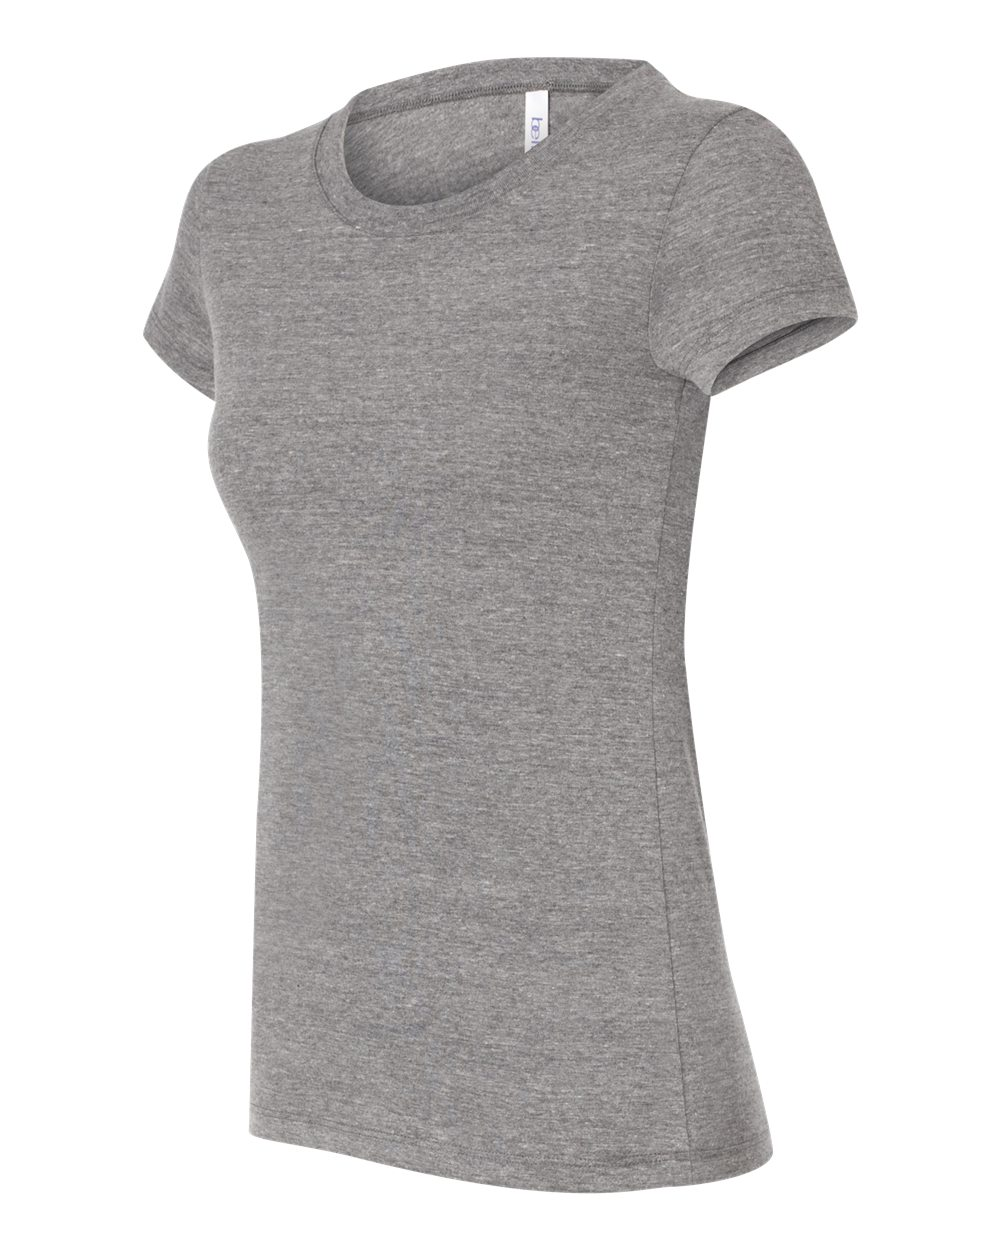 Bella-Canvas-Women-039-s-Triblend-Short-Sleeve-T-Shirt-B8413-S-2XL thumbnail 45